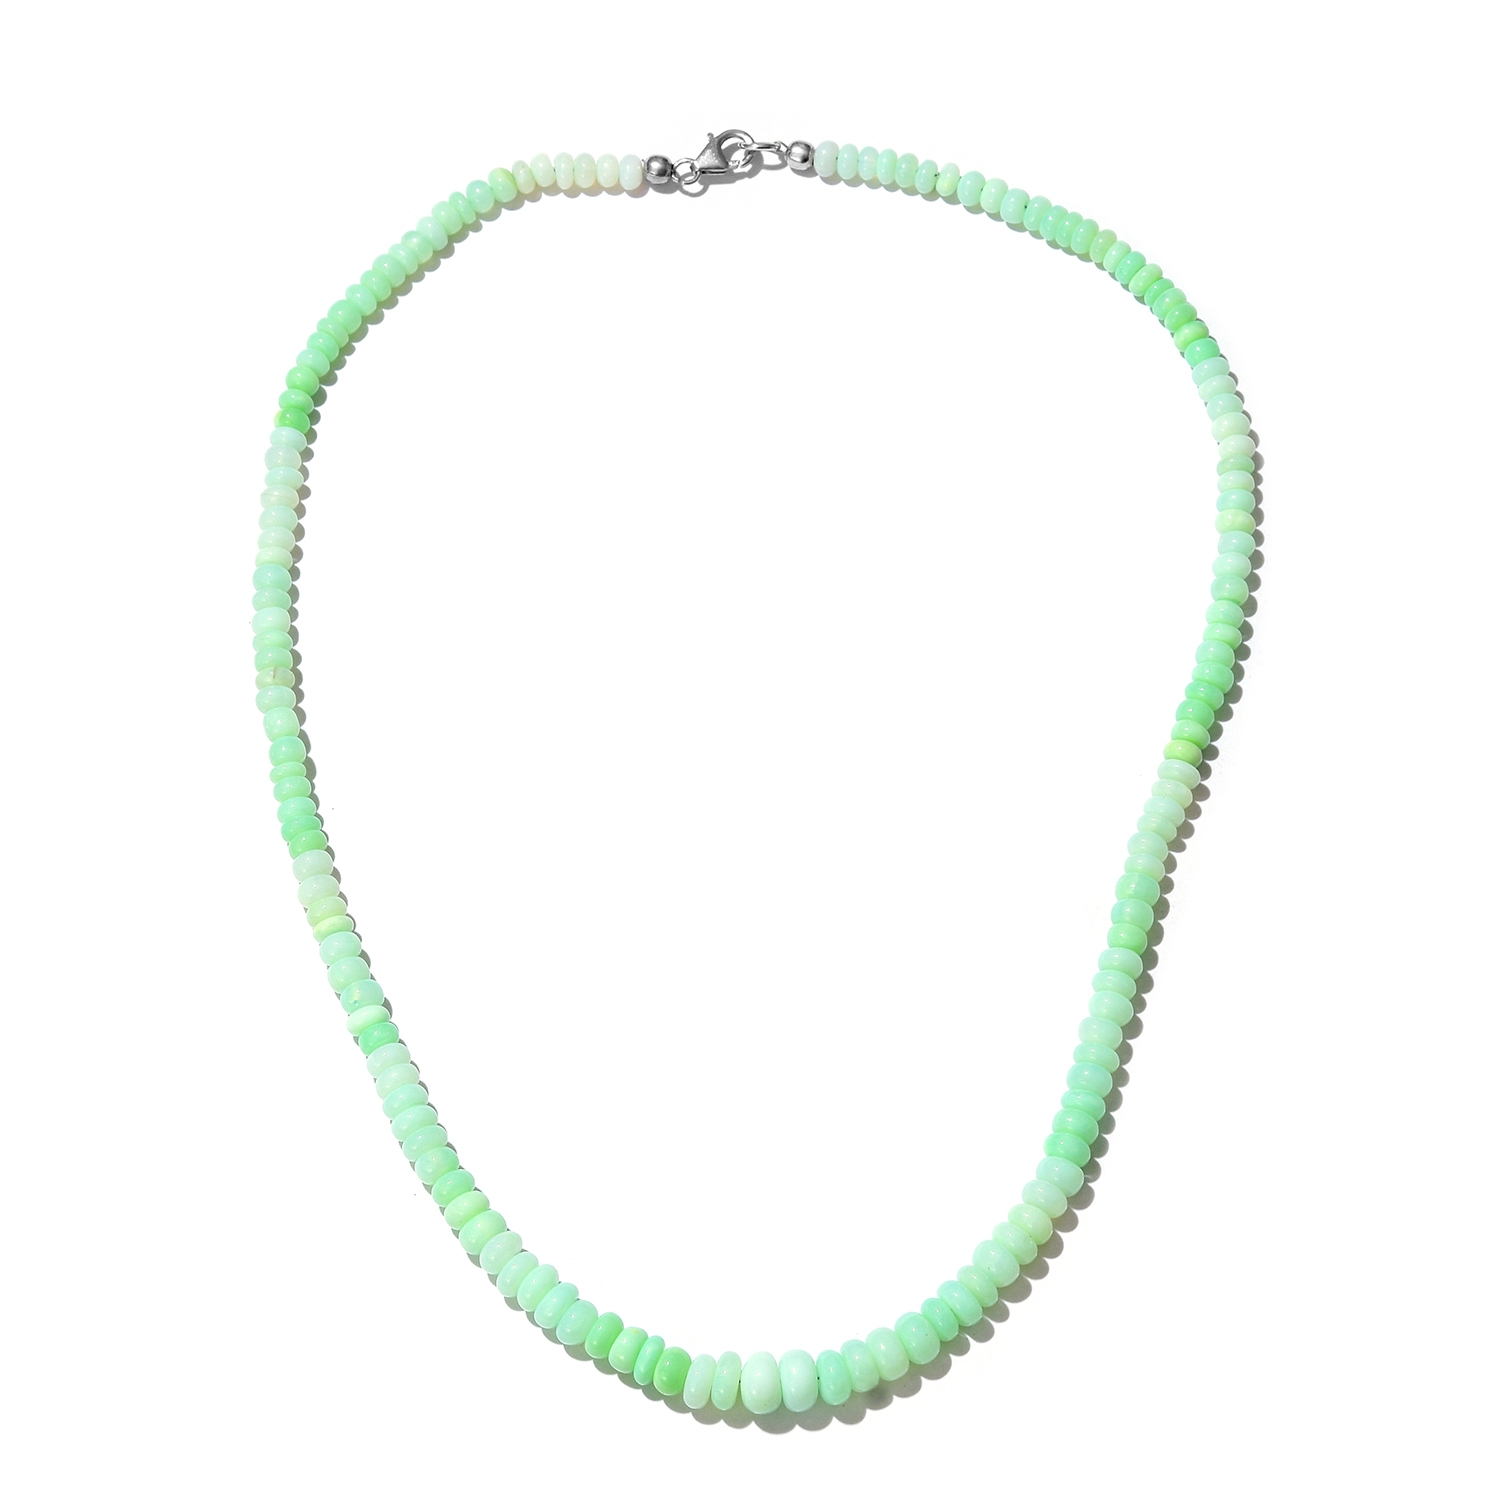 "Mint Green Opal Enhanced Beads Platinum Plated Silver Fashion Pendant Necklace Size 20"" by Shop LC"